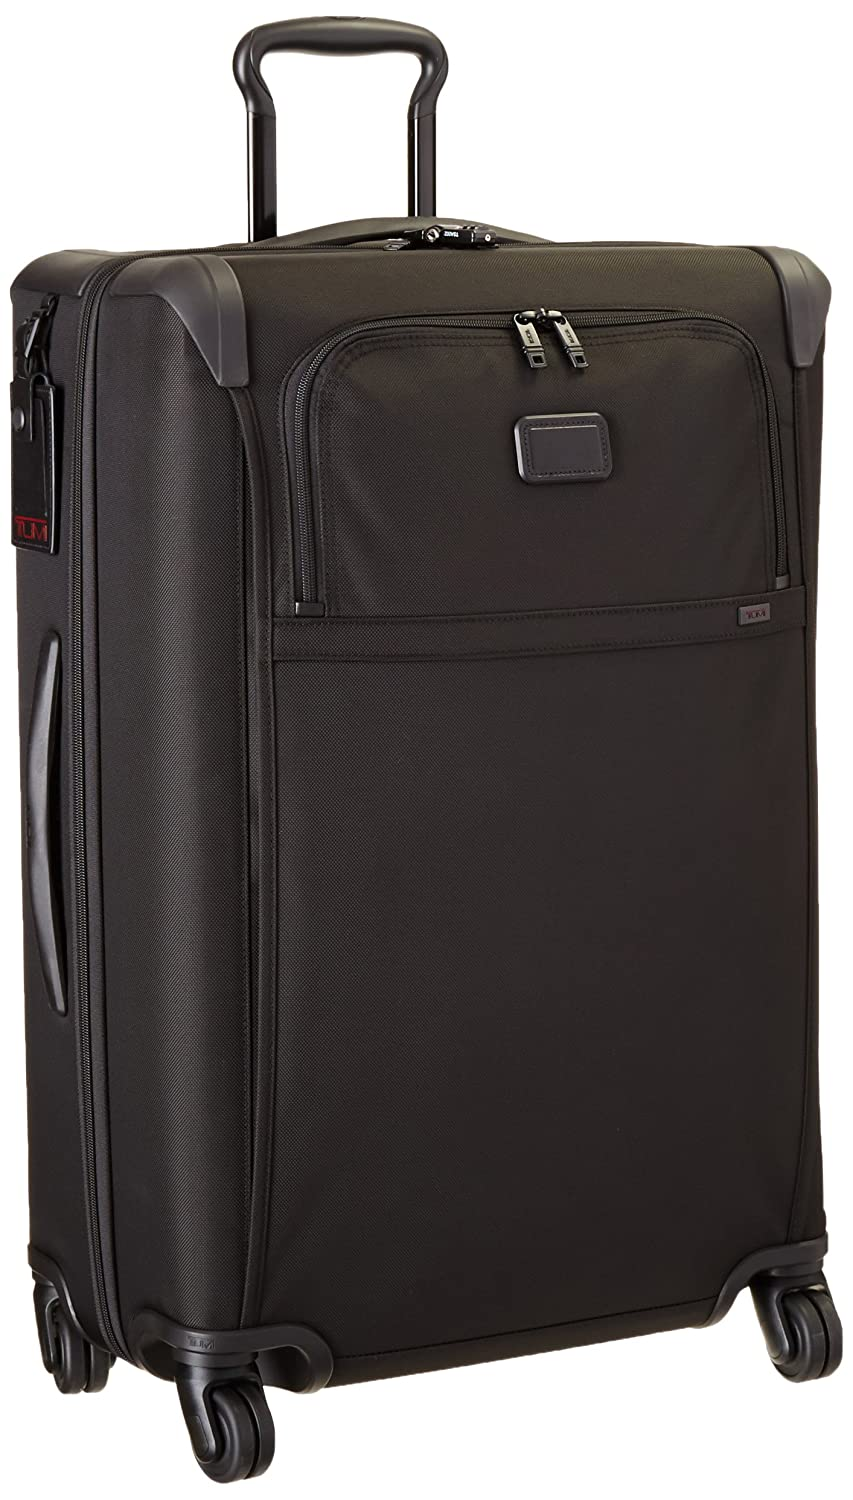 Tumi Alpha 2 Medium Trip 4 Wheeled Packing Case 75L, Black (Black) - 022167